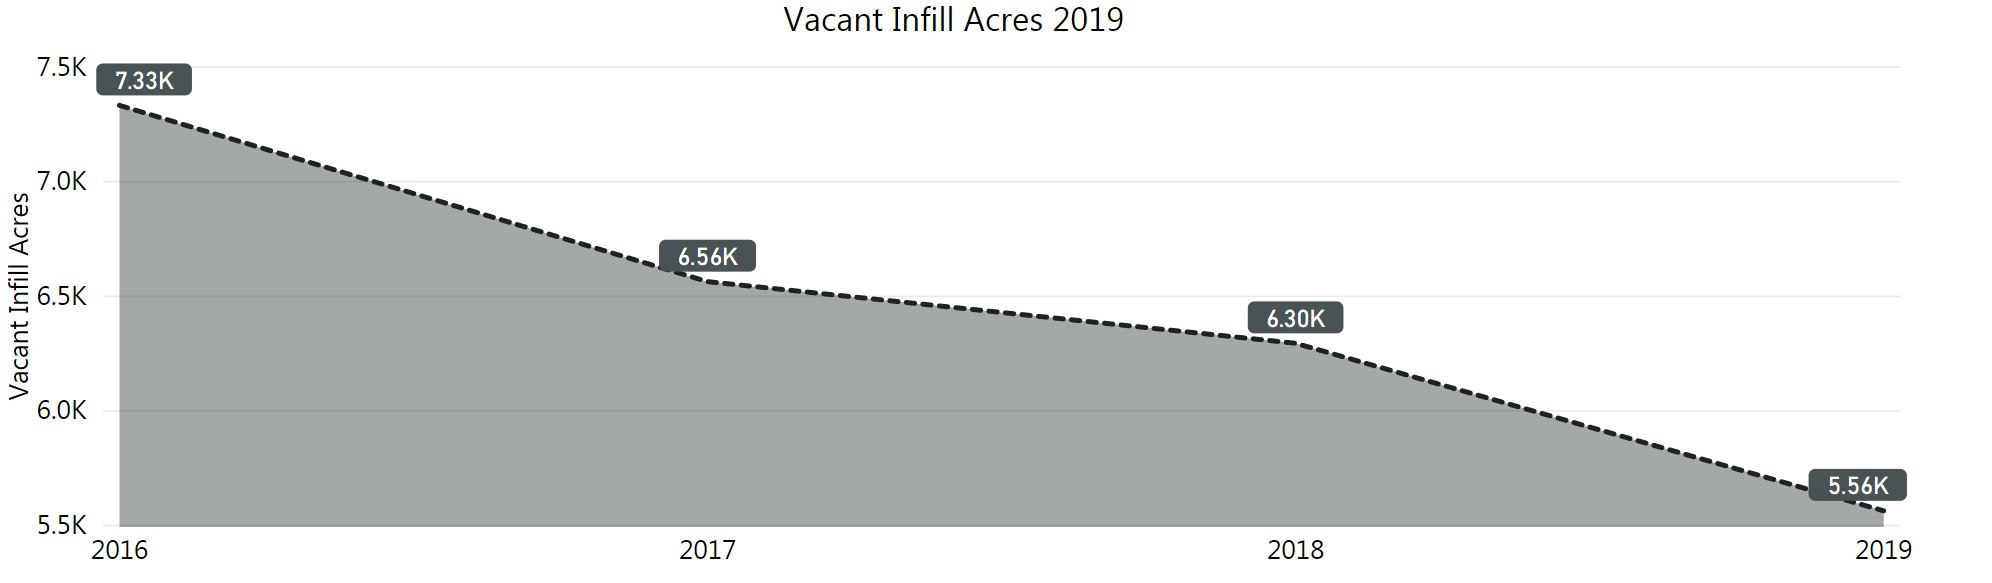 graph of vacant infill acres. dropping in 2019 5,560 acres